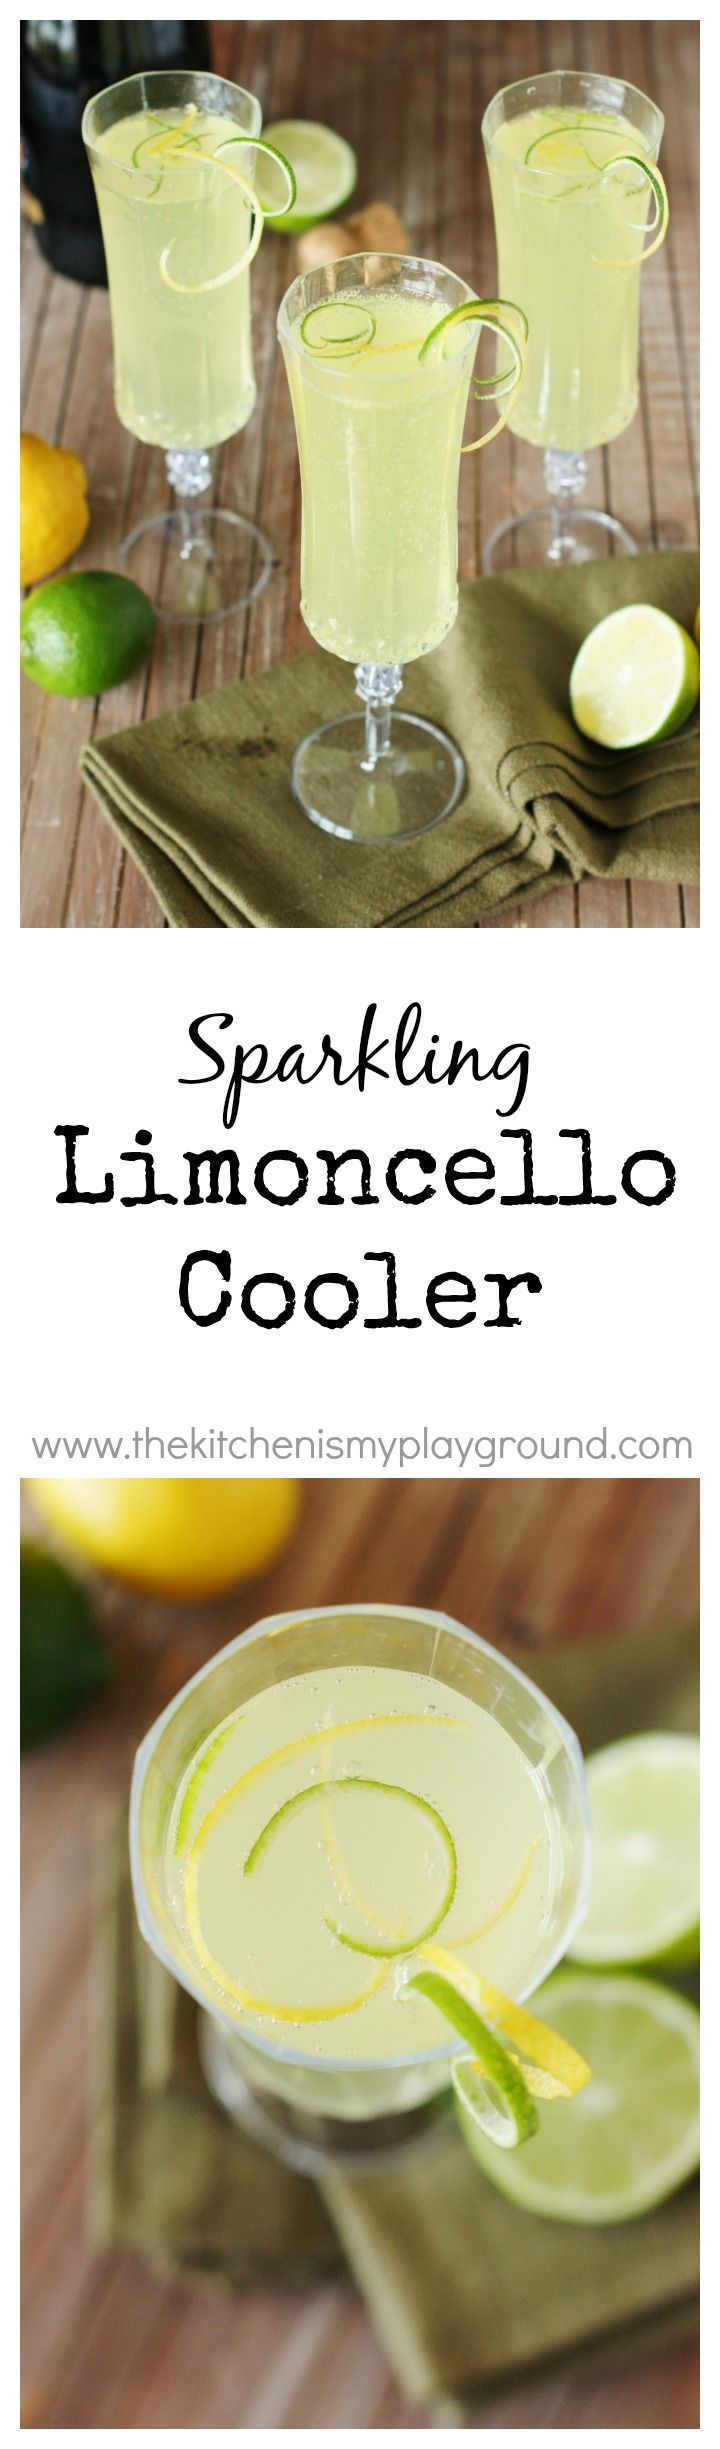 Sparkling Limoncello Cooler ~ A refreshing combination of fresh lime juice, Limoncello, & bubbly sparkling wine. #cocktails #happyhour #champagnecocktails www.thekitchenismyplayground.com #Sparkles